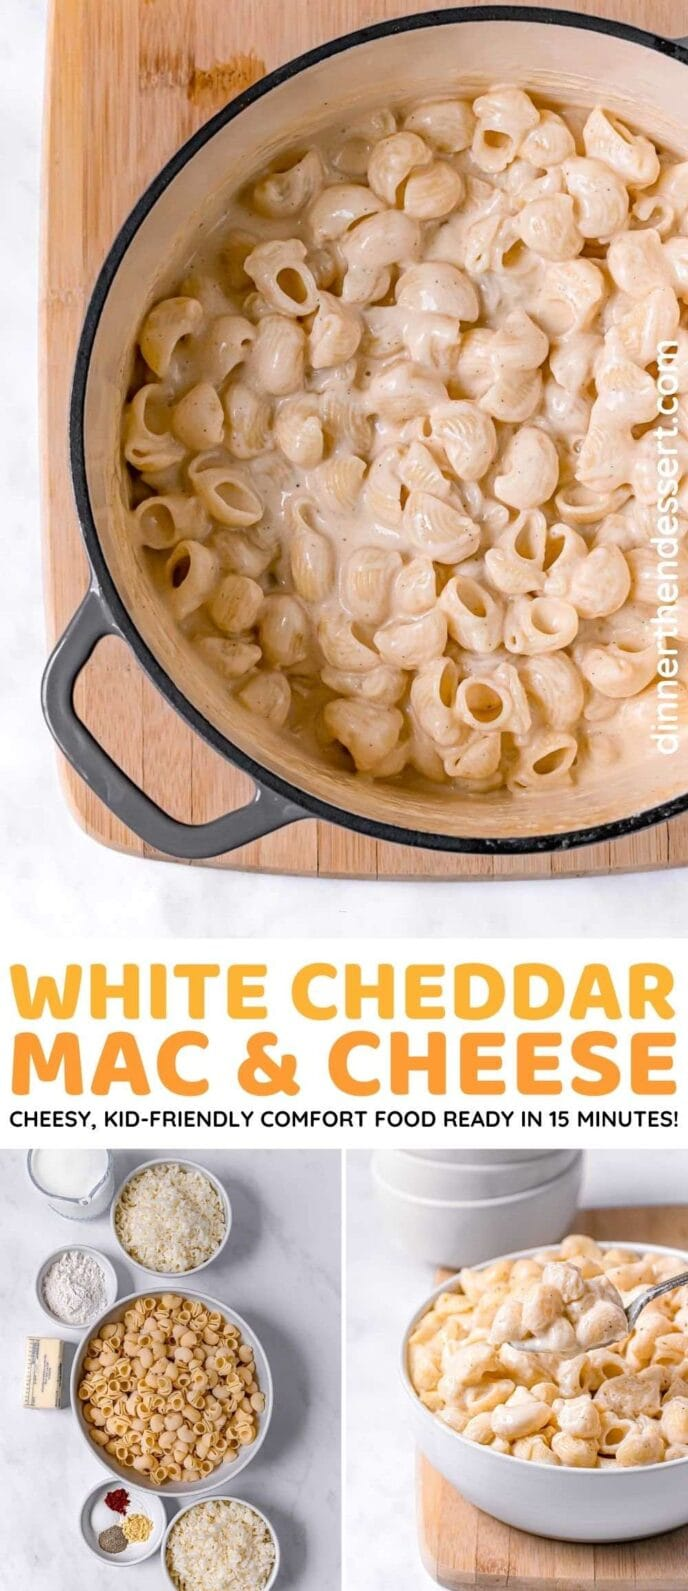 White Cheddar Mac & Cheese collage